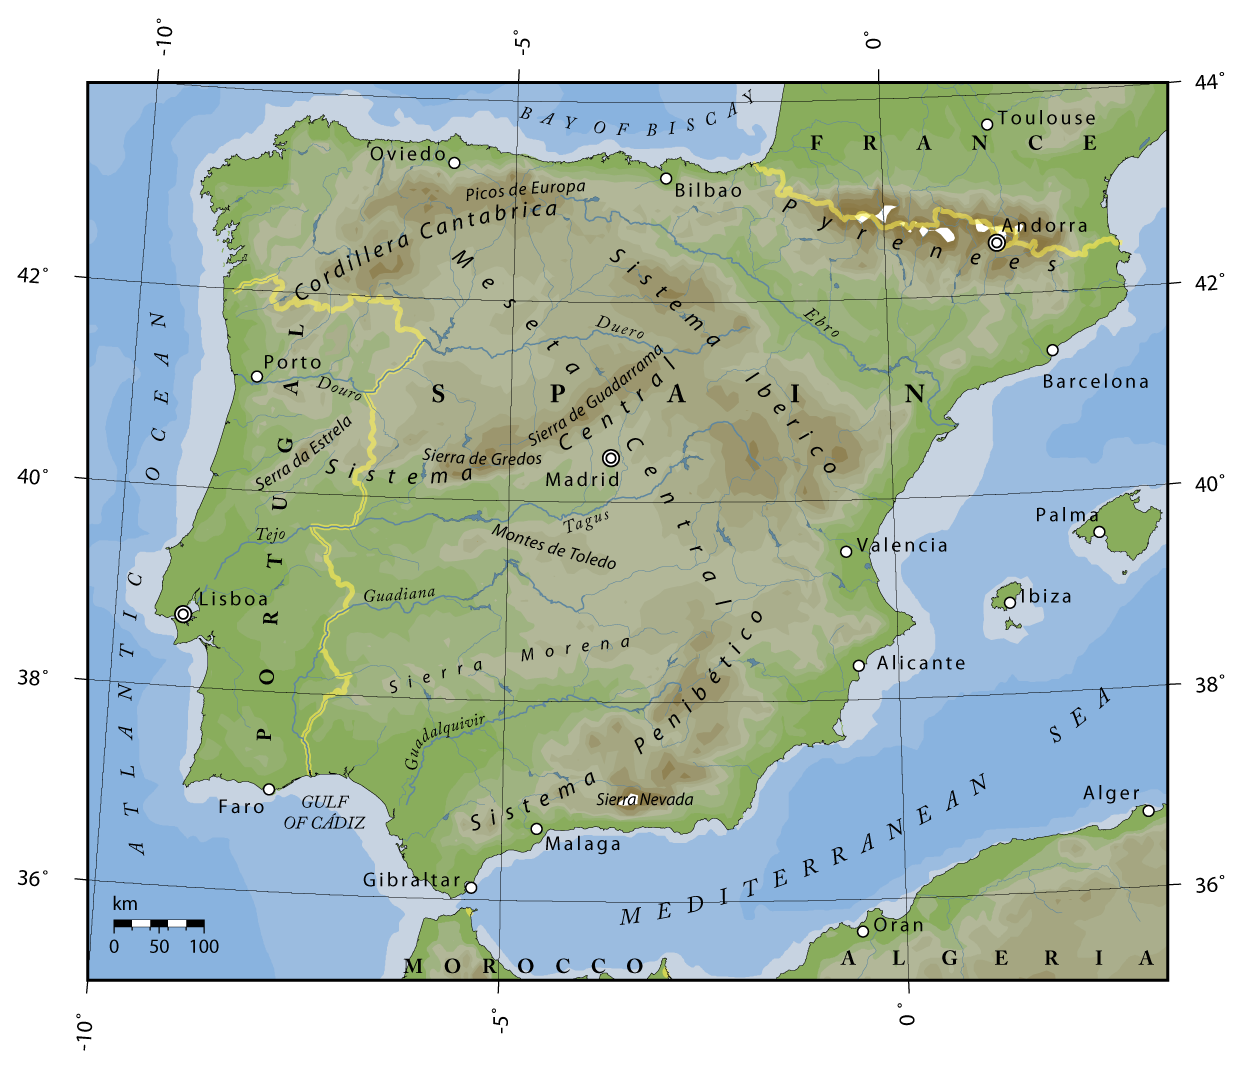 Topographical Map Of Spain.File Spain Topography Png Wikimedia Commons